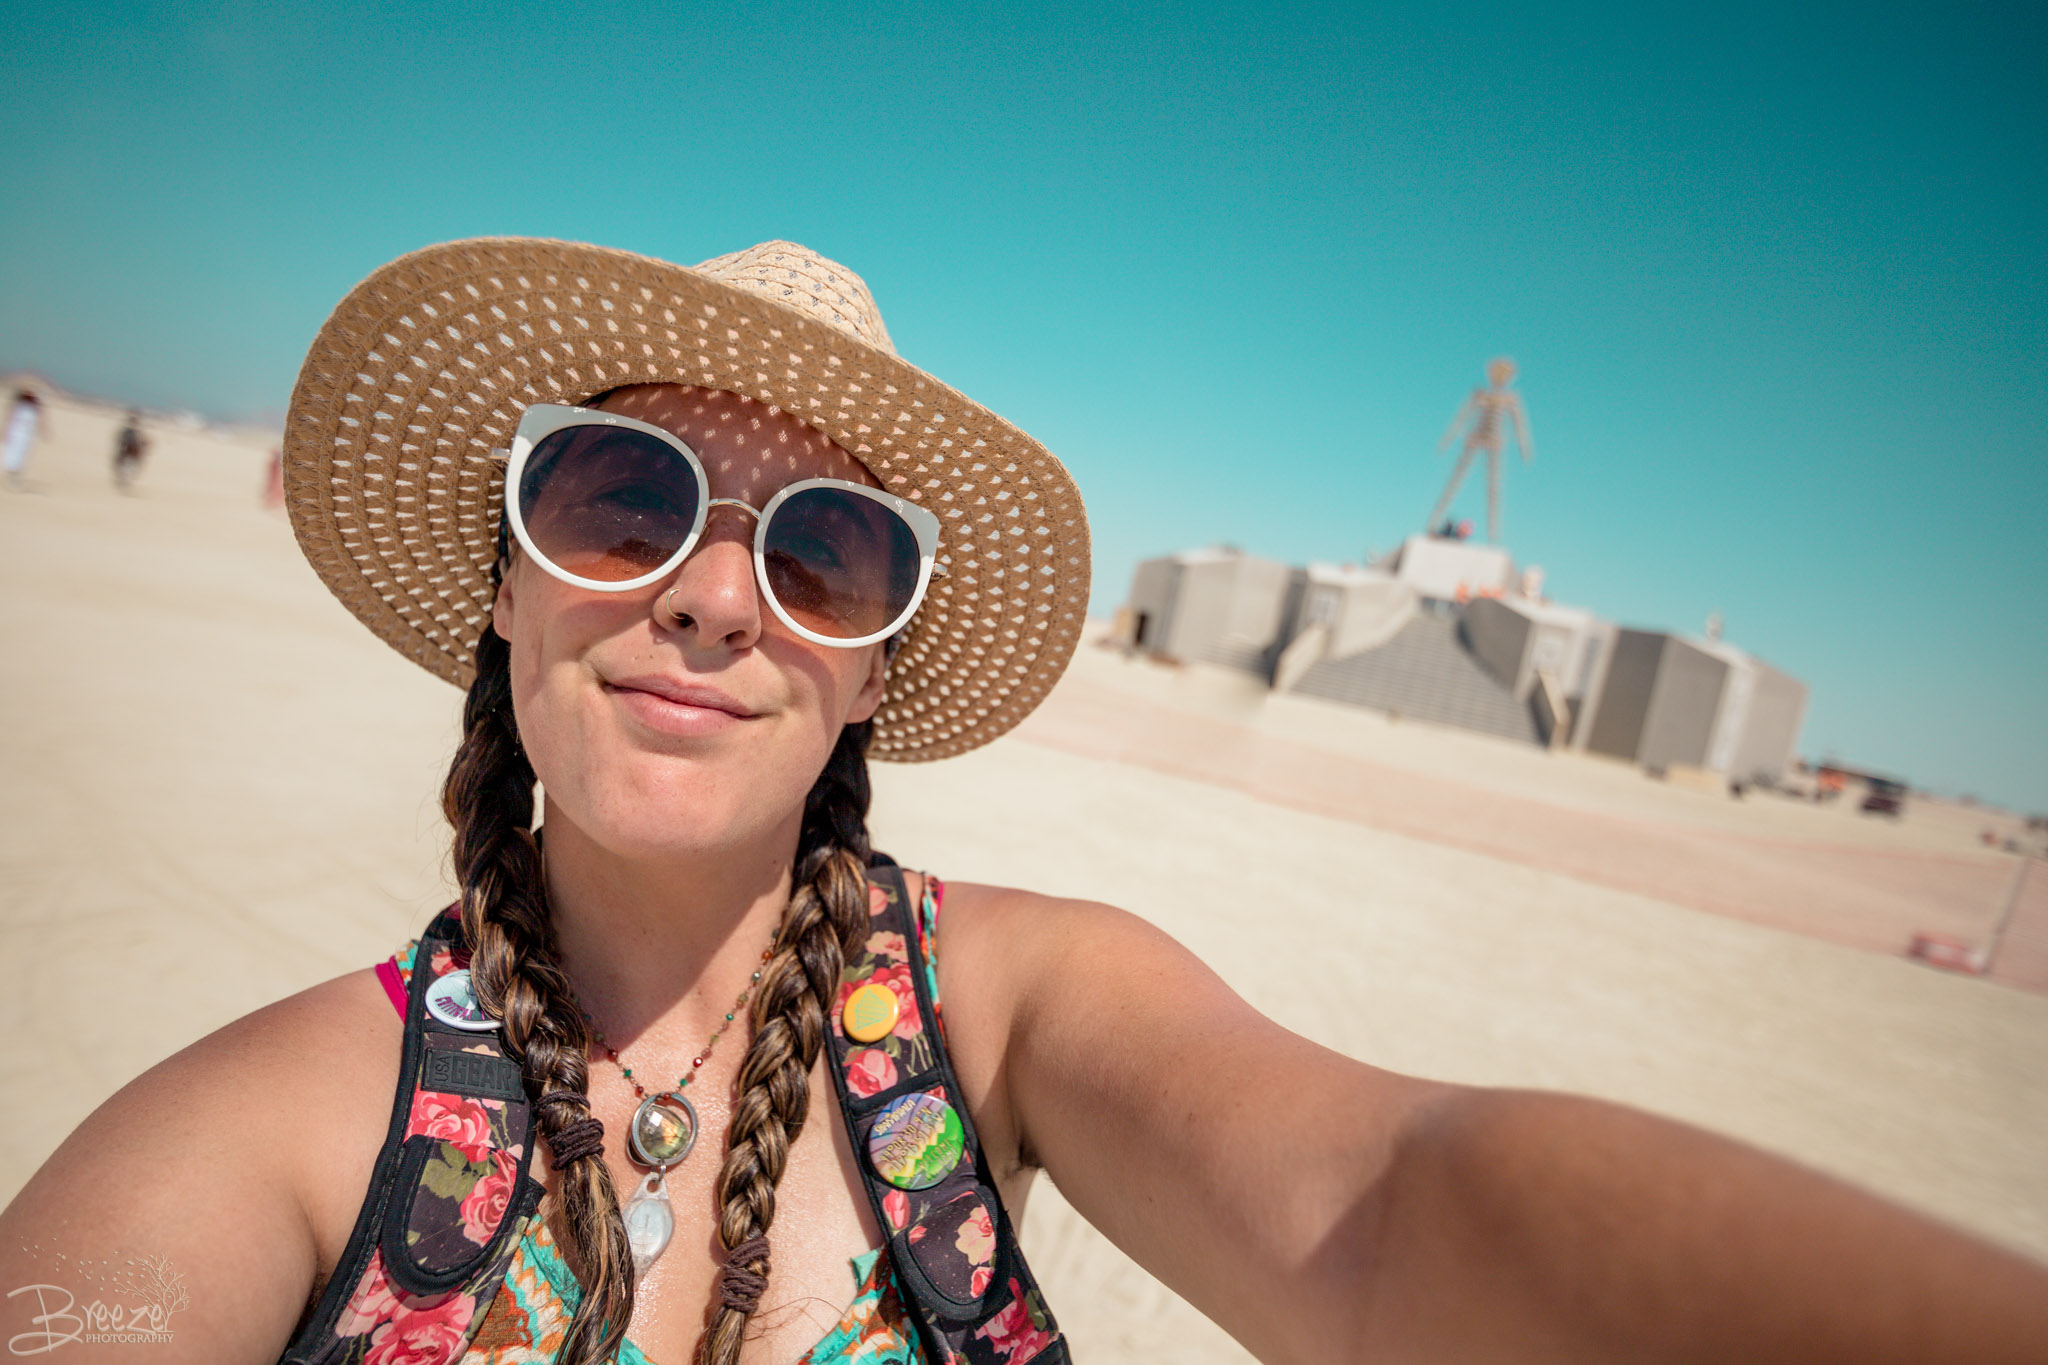 Brie'Ana Breeze Photography & Media - Burning Man 2018-4266.jpg